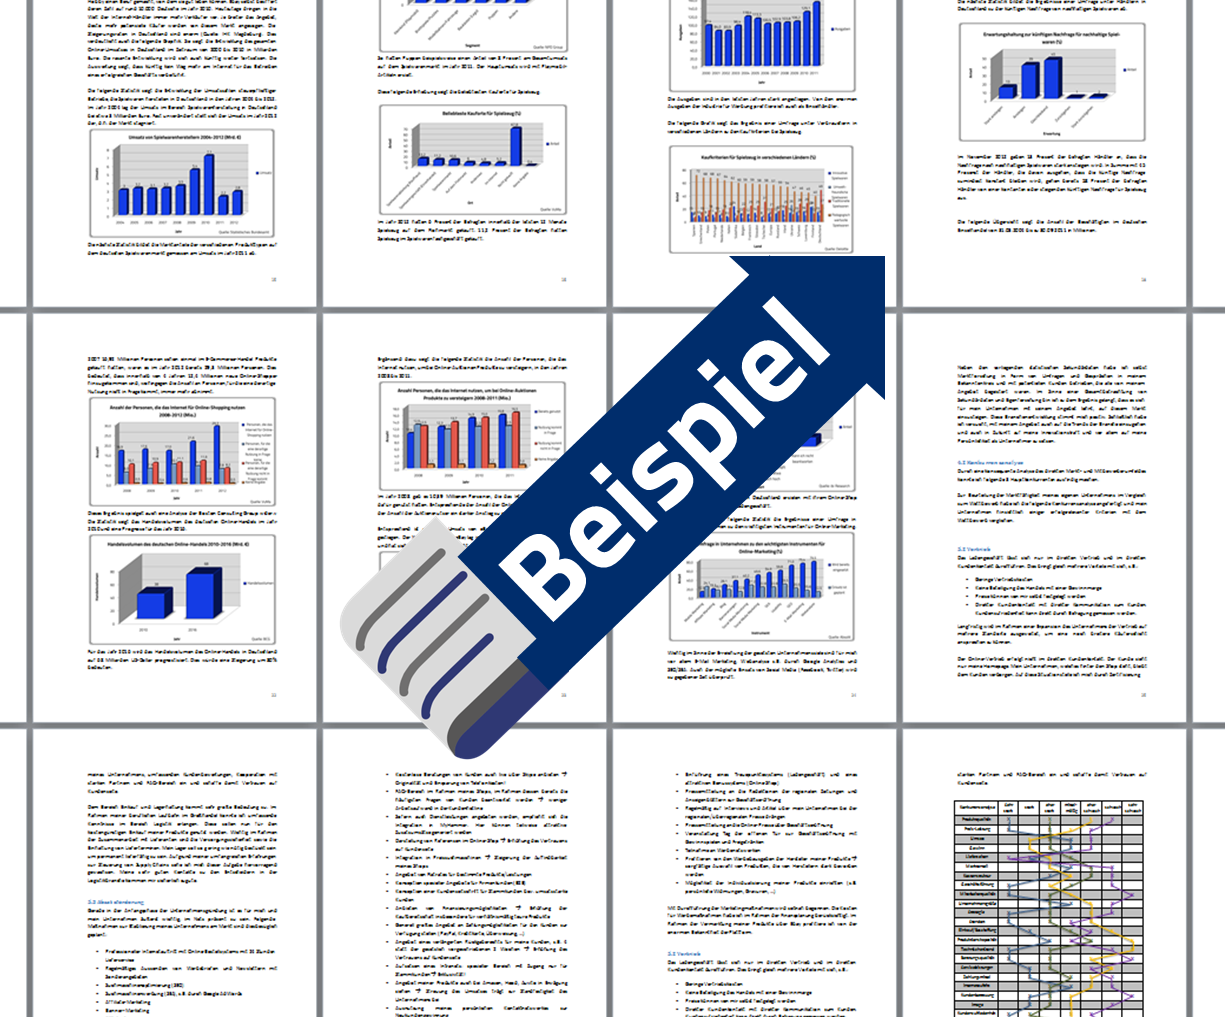 businessplan-beispiel-existenzgruendung-ideen-geschaeftsideen-muster-vorlage-software-business-plan